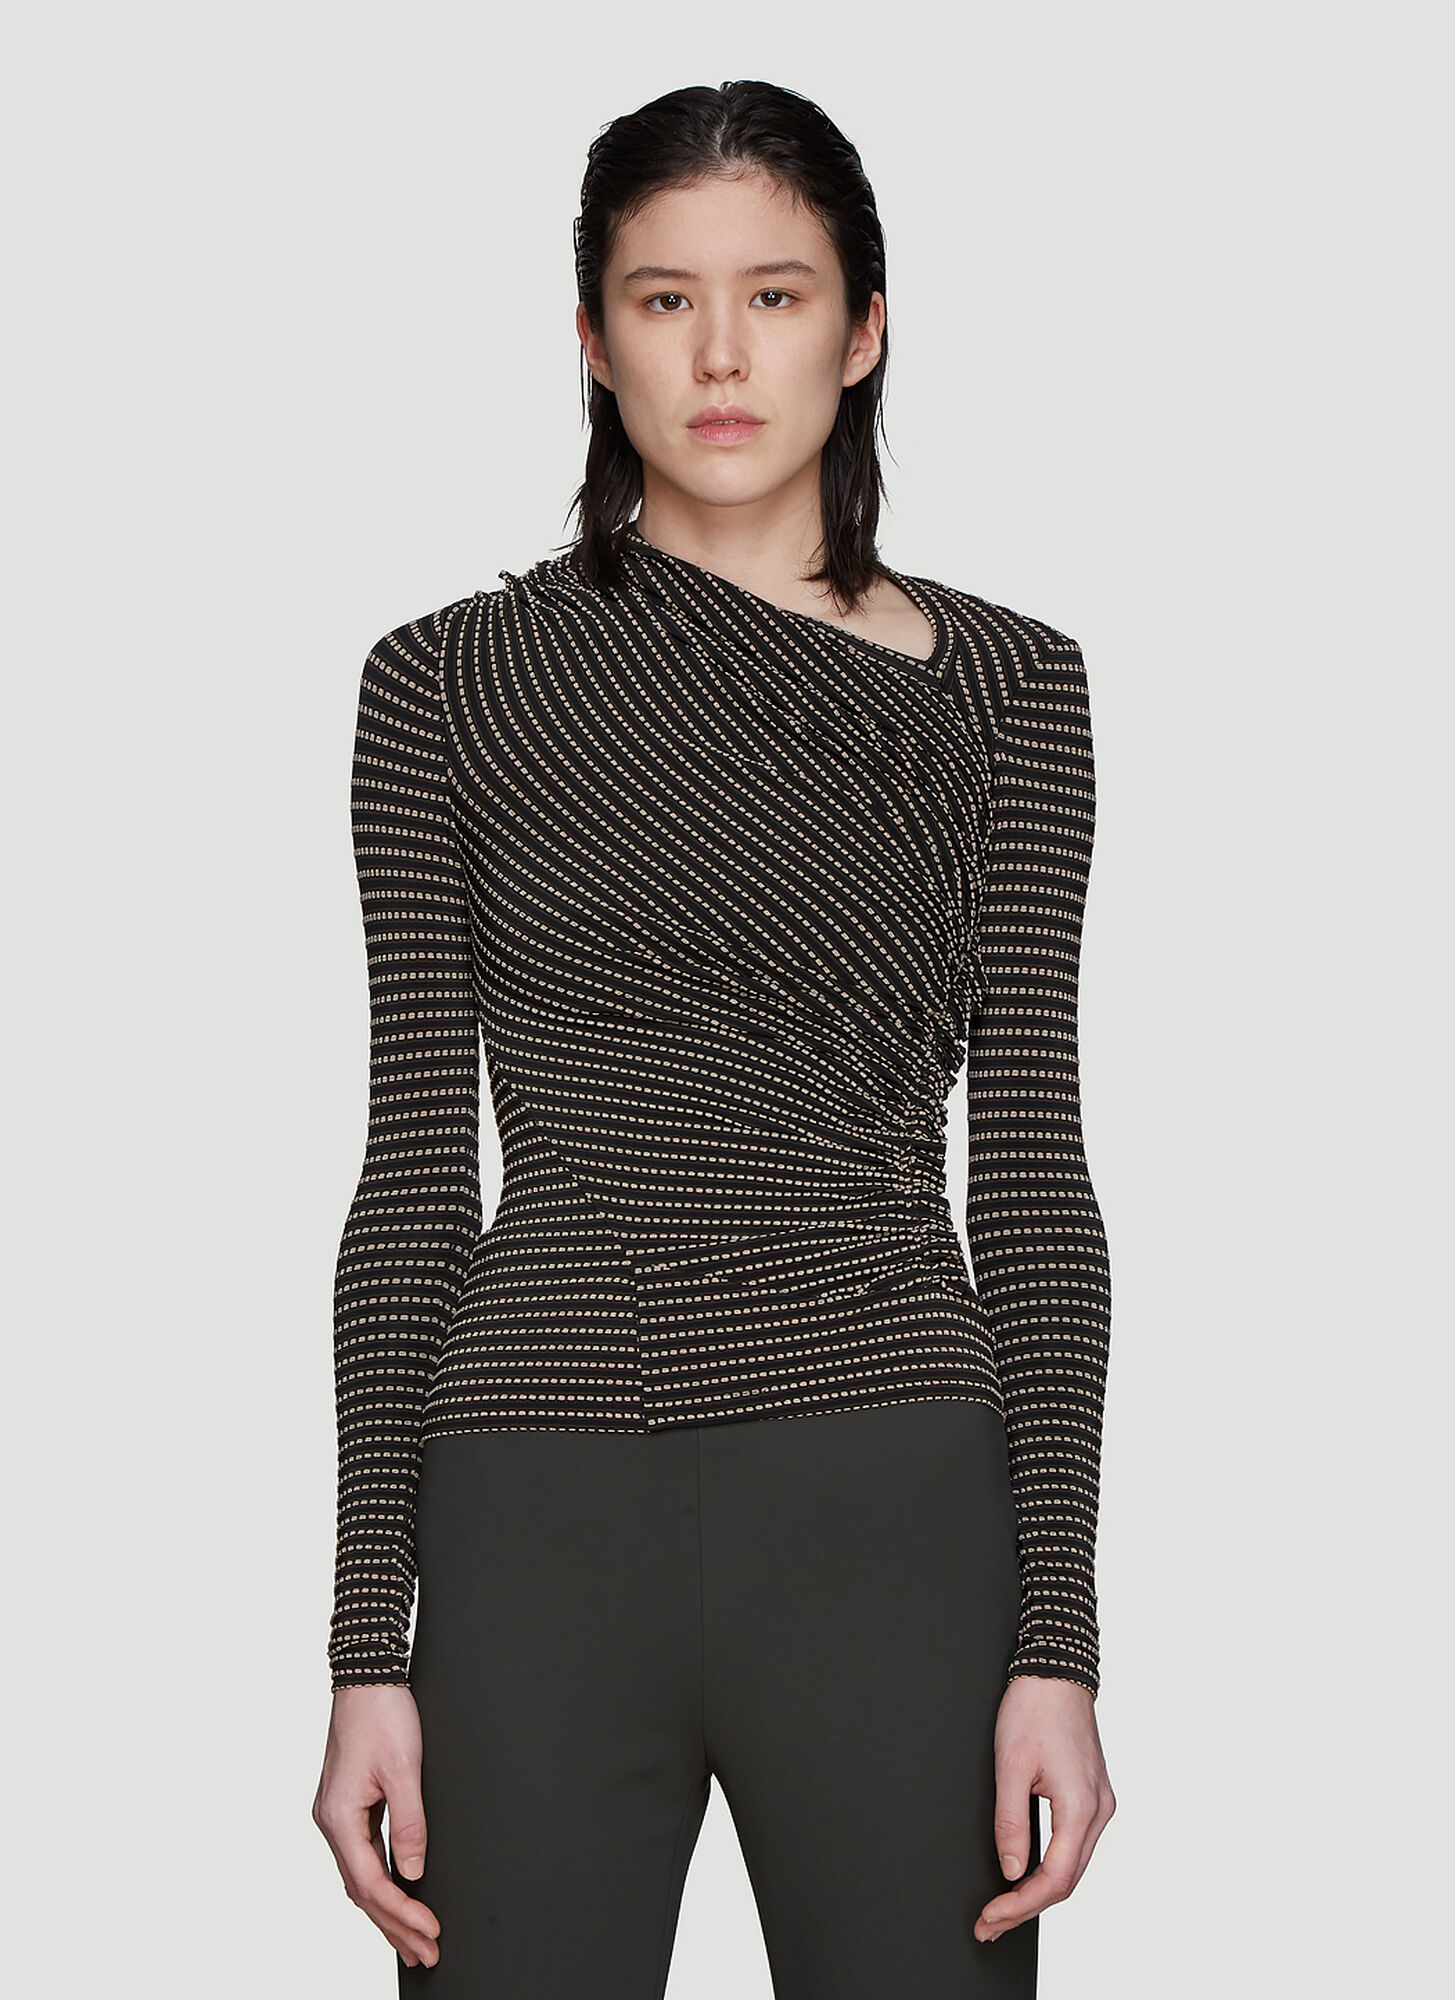 Atlein Jacquard Point Top in Black